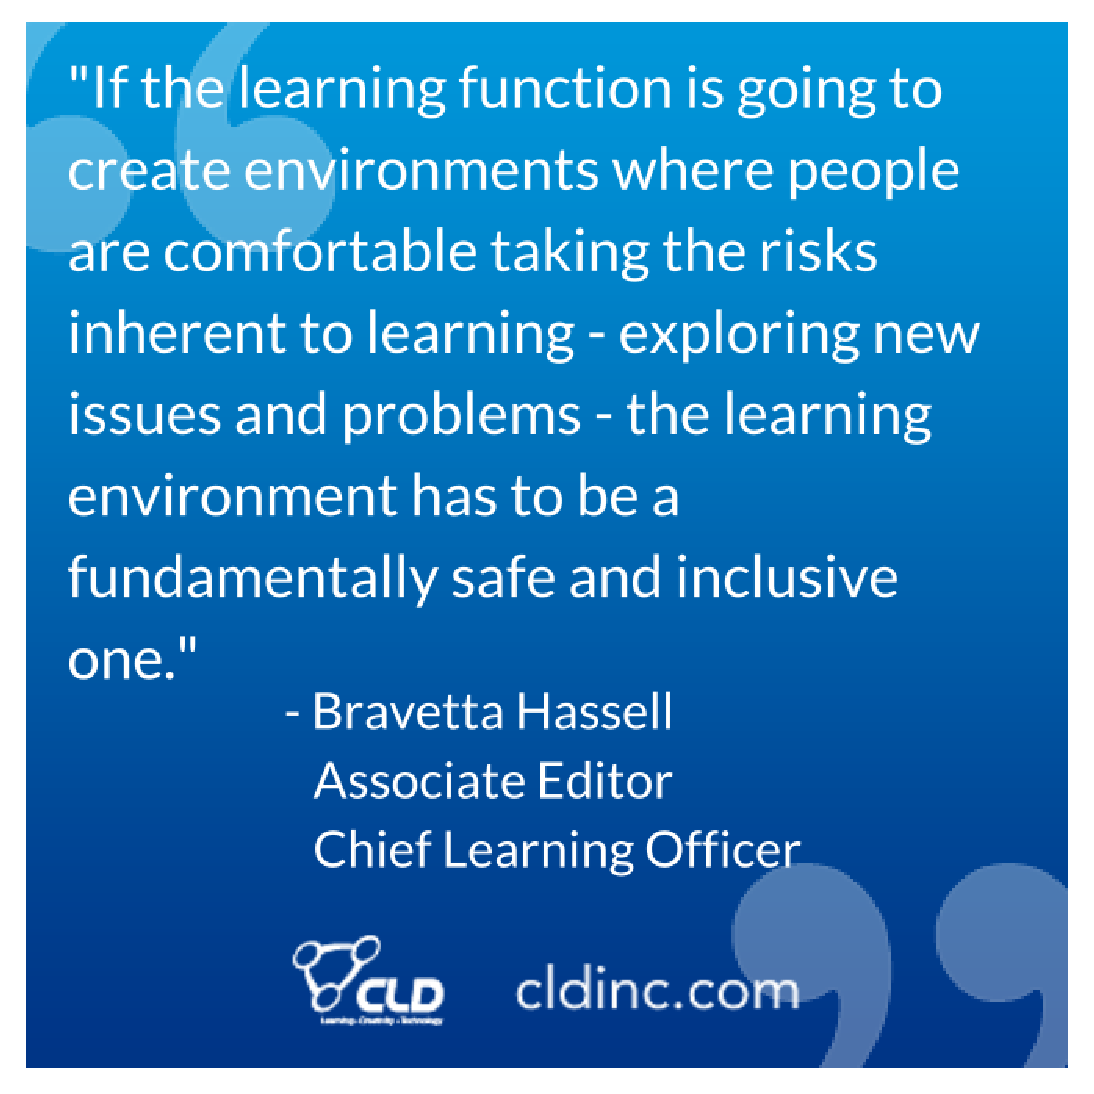 """""""If the learning function is going to create environments where people are comfortable taking the risks inherent to learning - exploring new issues and problems - the learning environment has to be a fundamentally safe and inclusive one."""""""